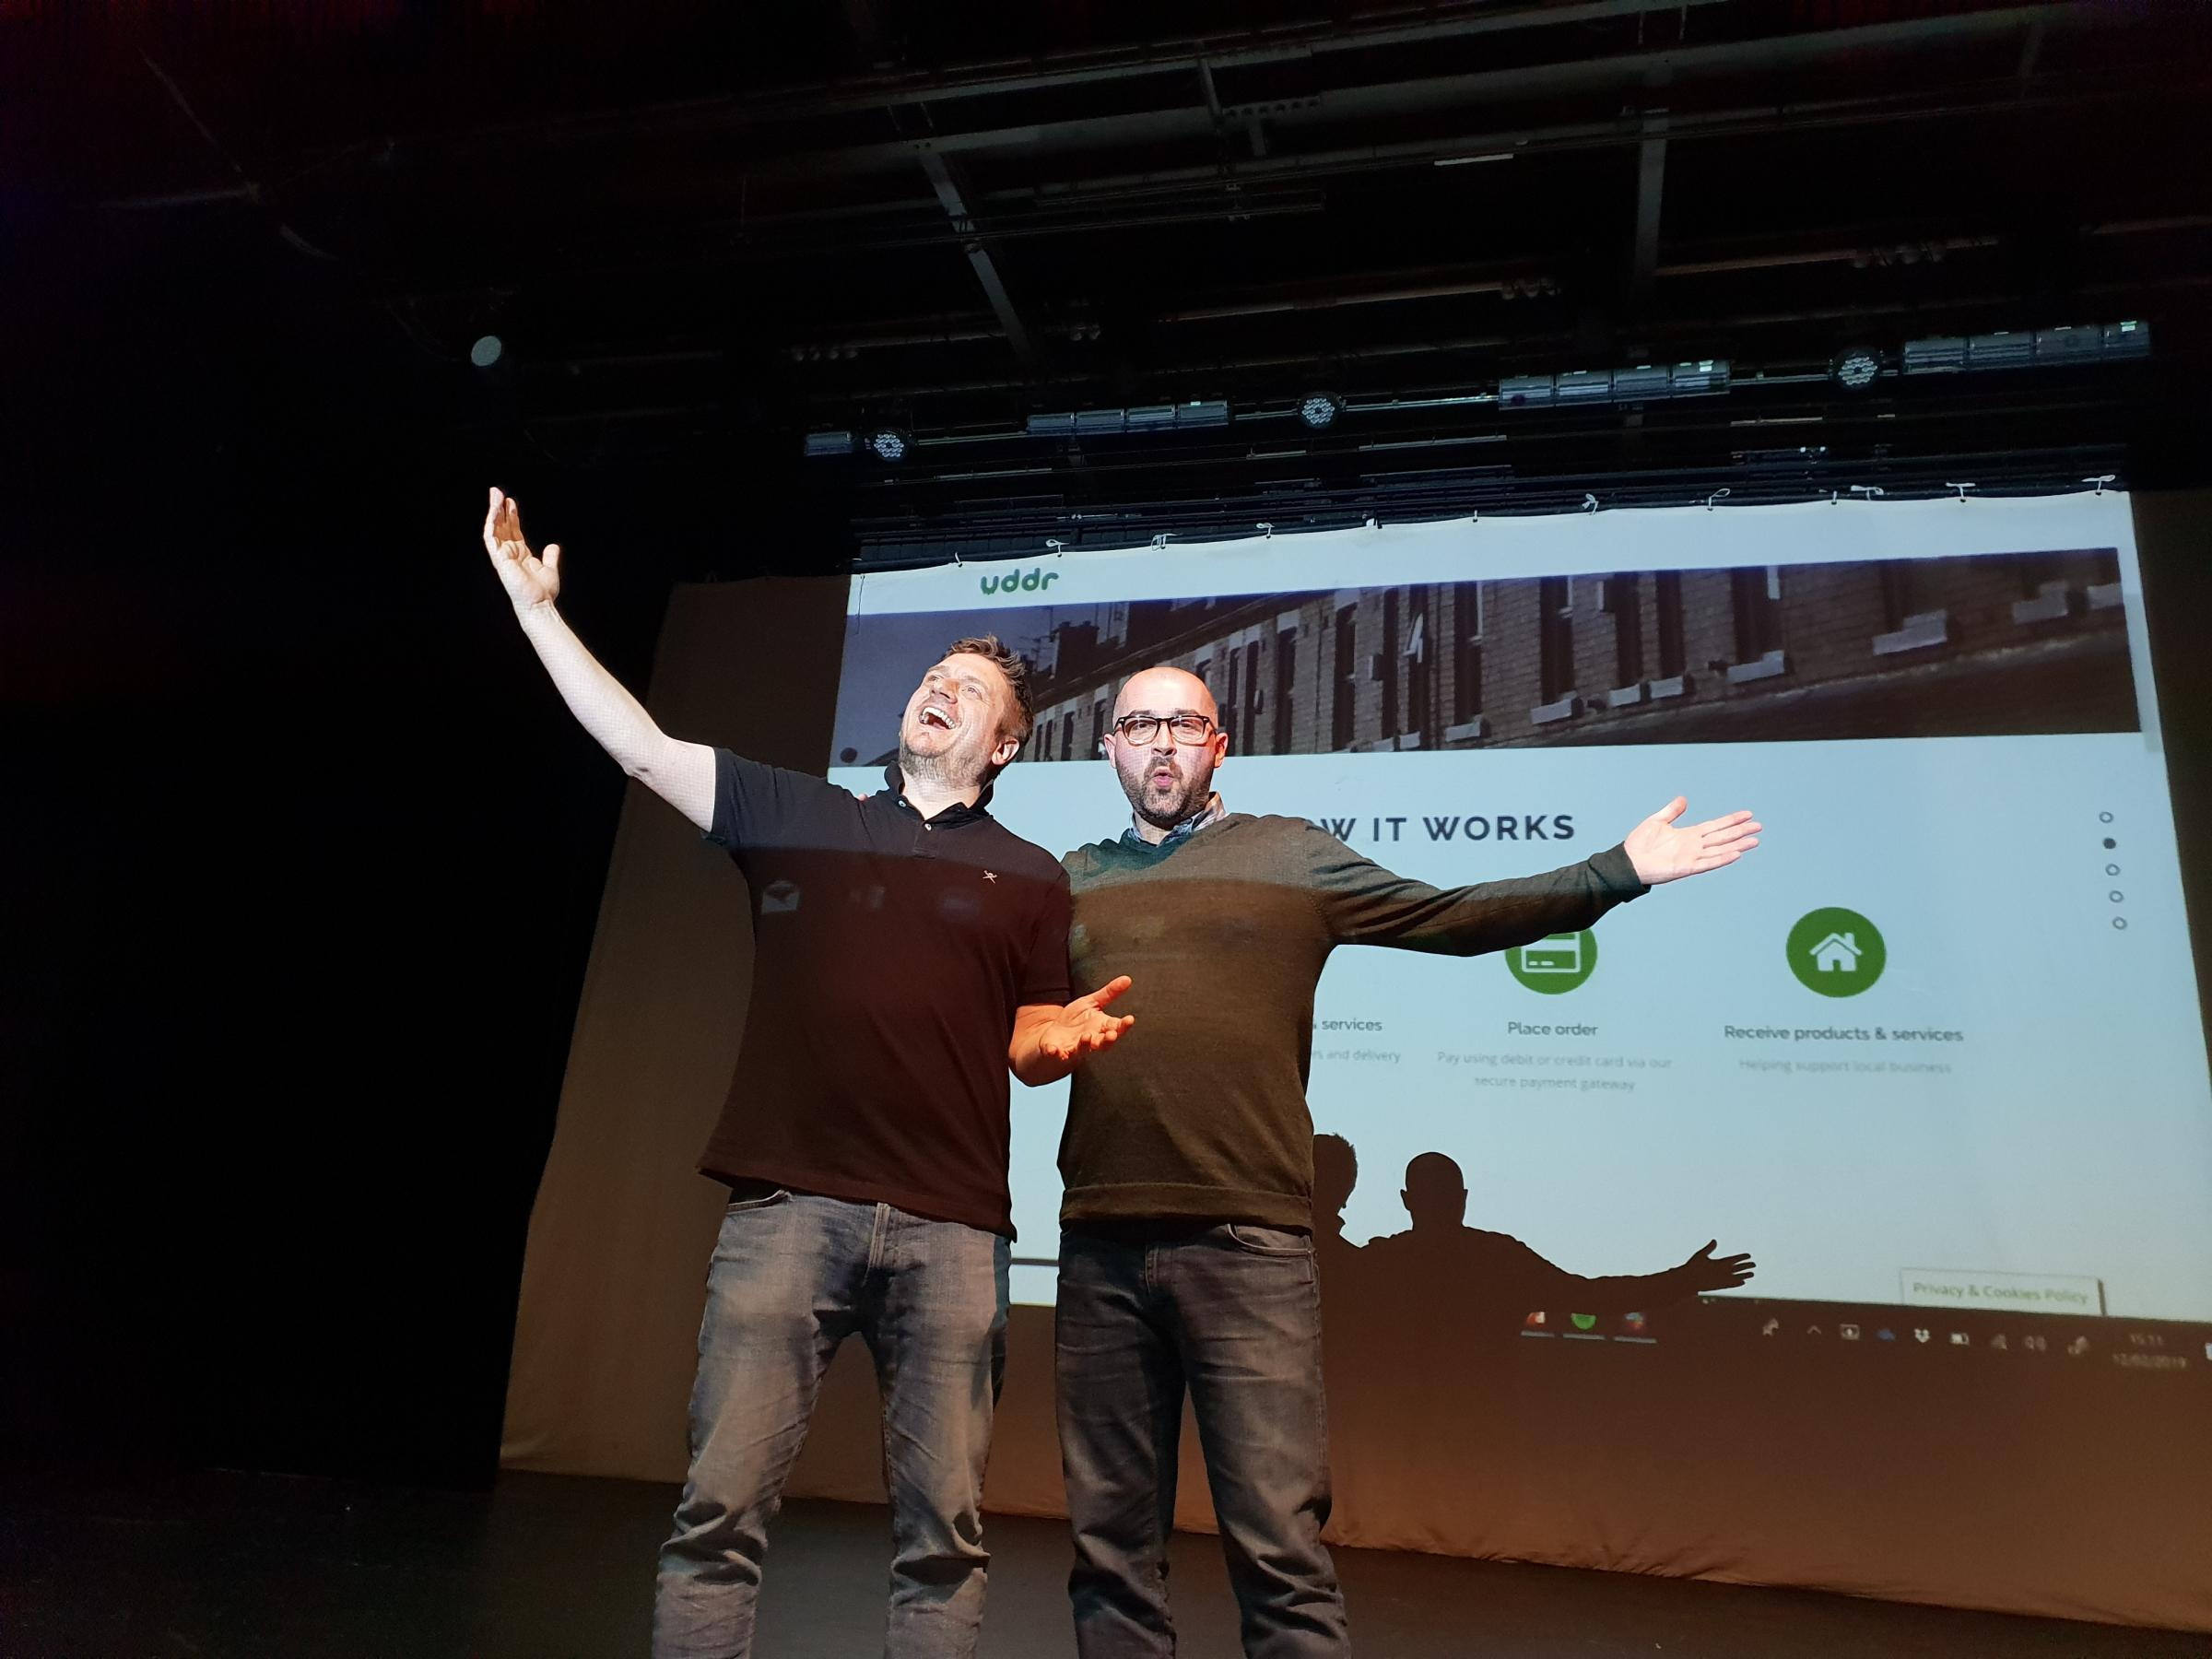 Torfaen based app developers aiming to link local services and suppliers with residents